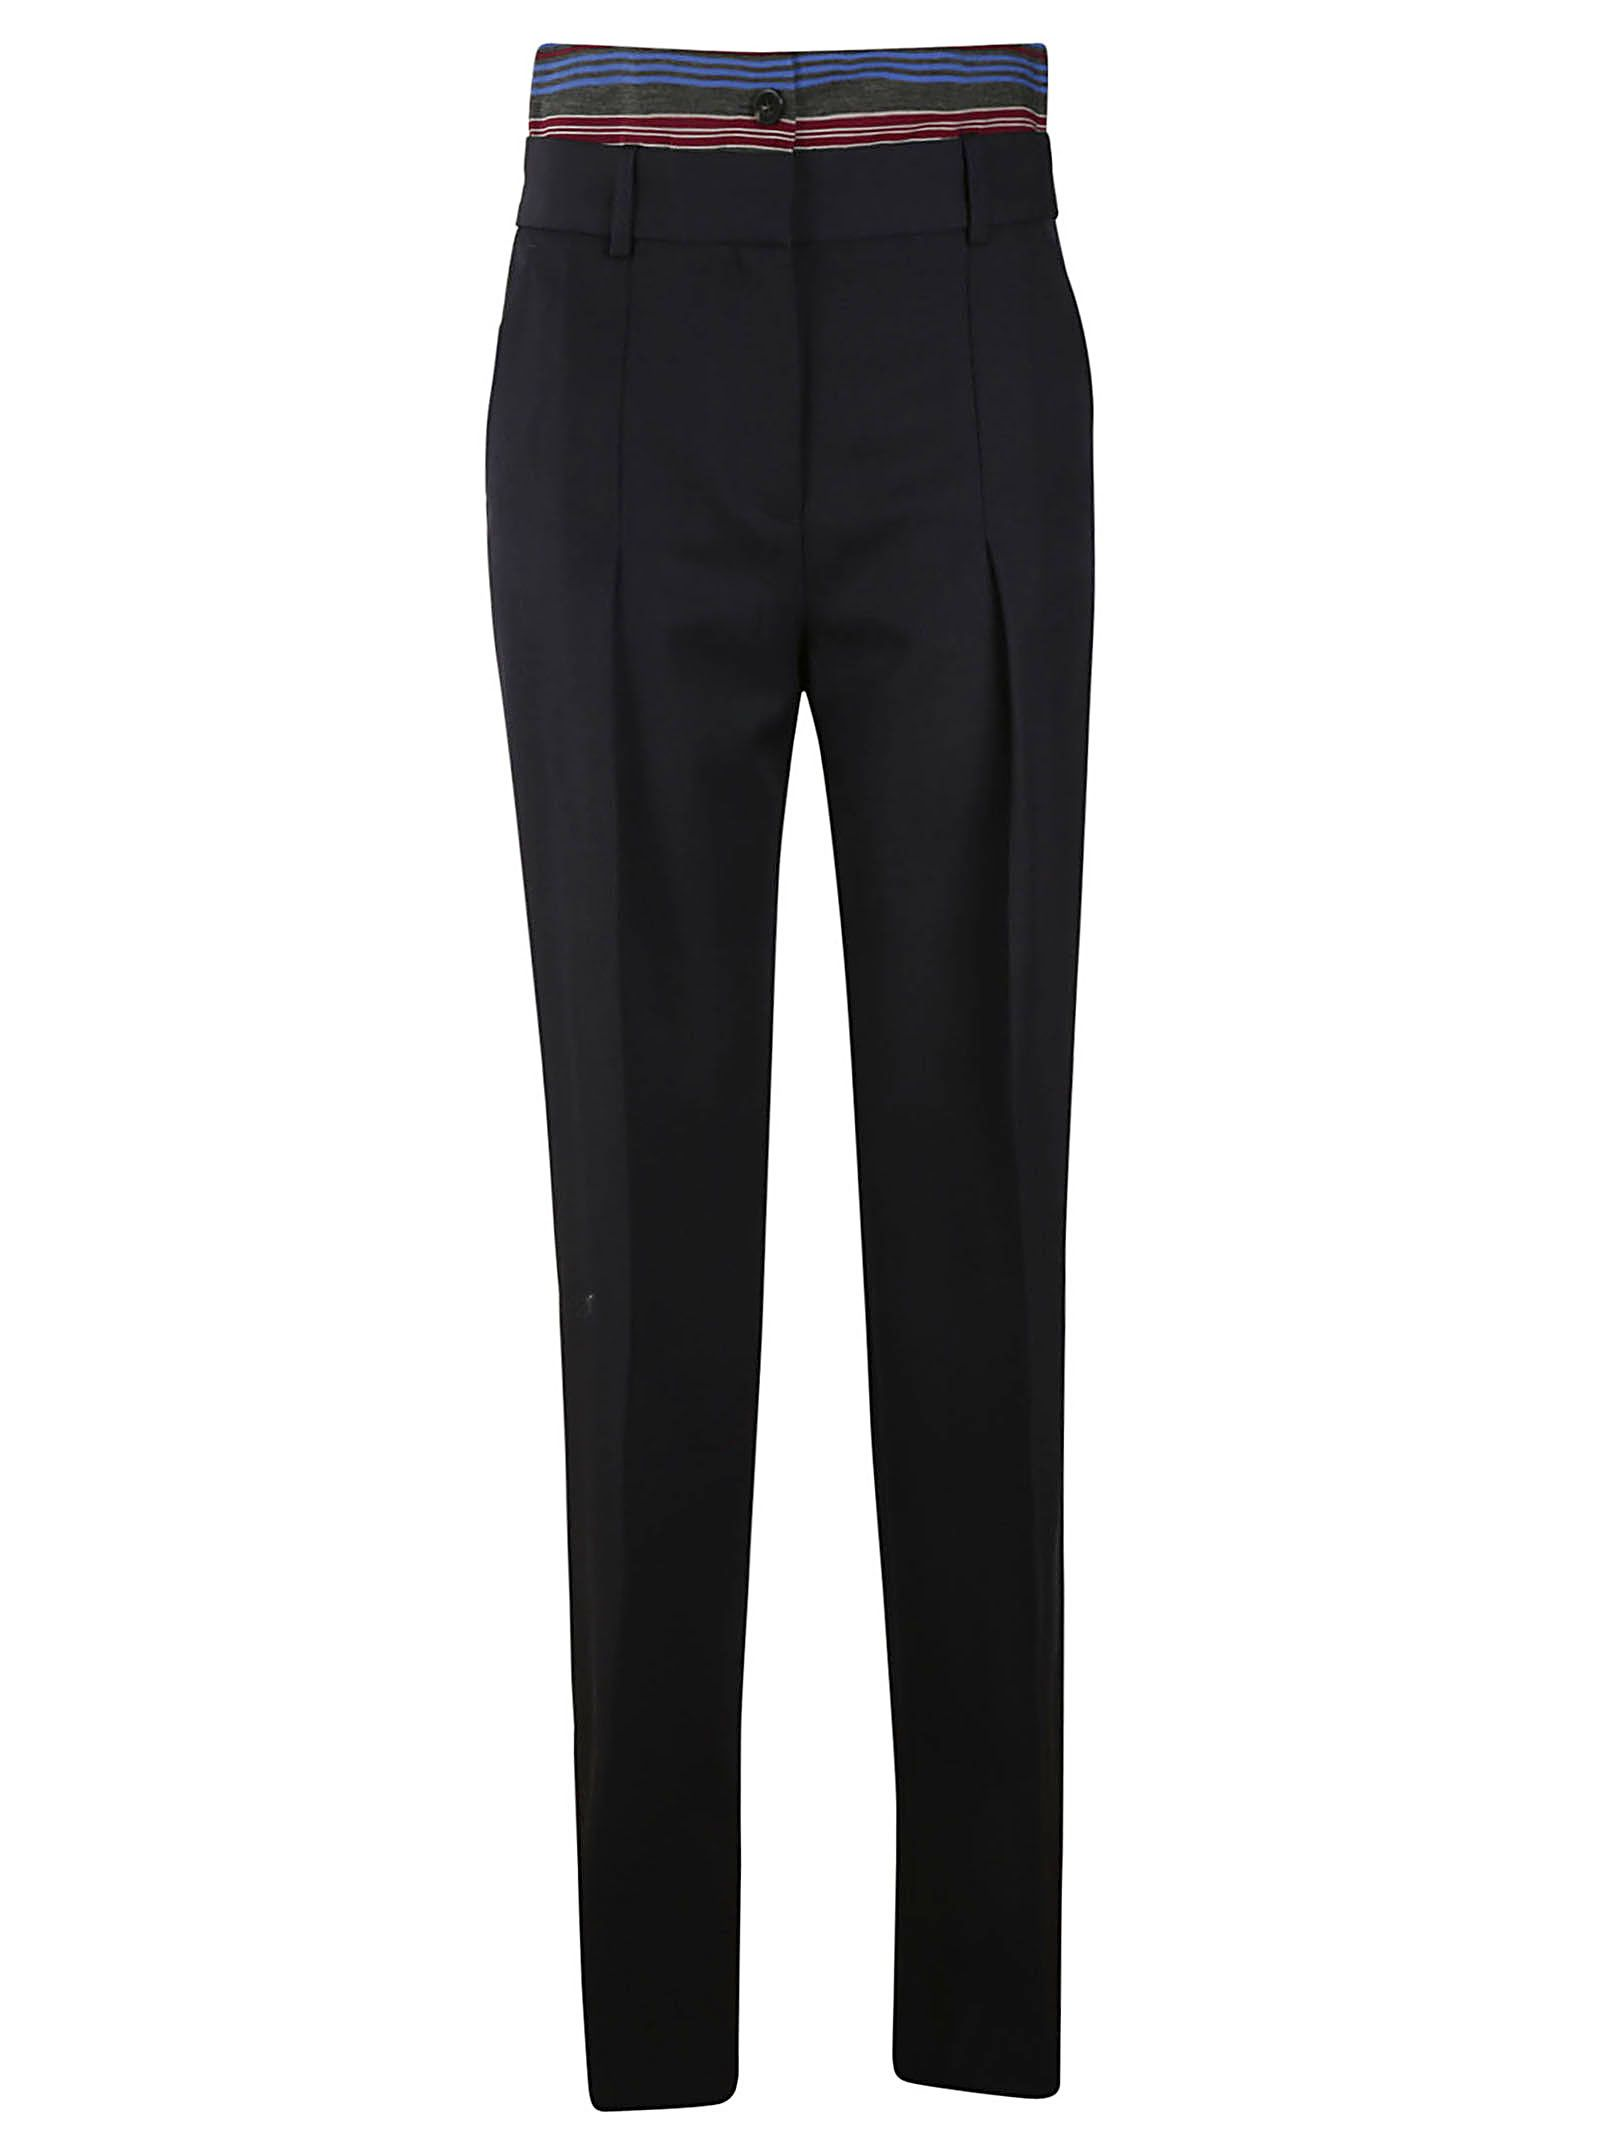 VICTORIA BECKHAM DOUBLE WAISTBAND TROUSERS